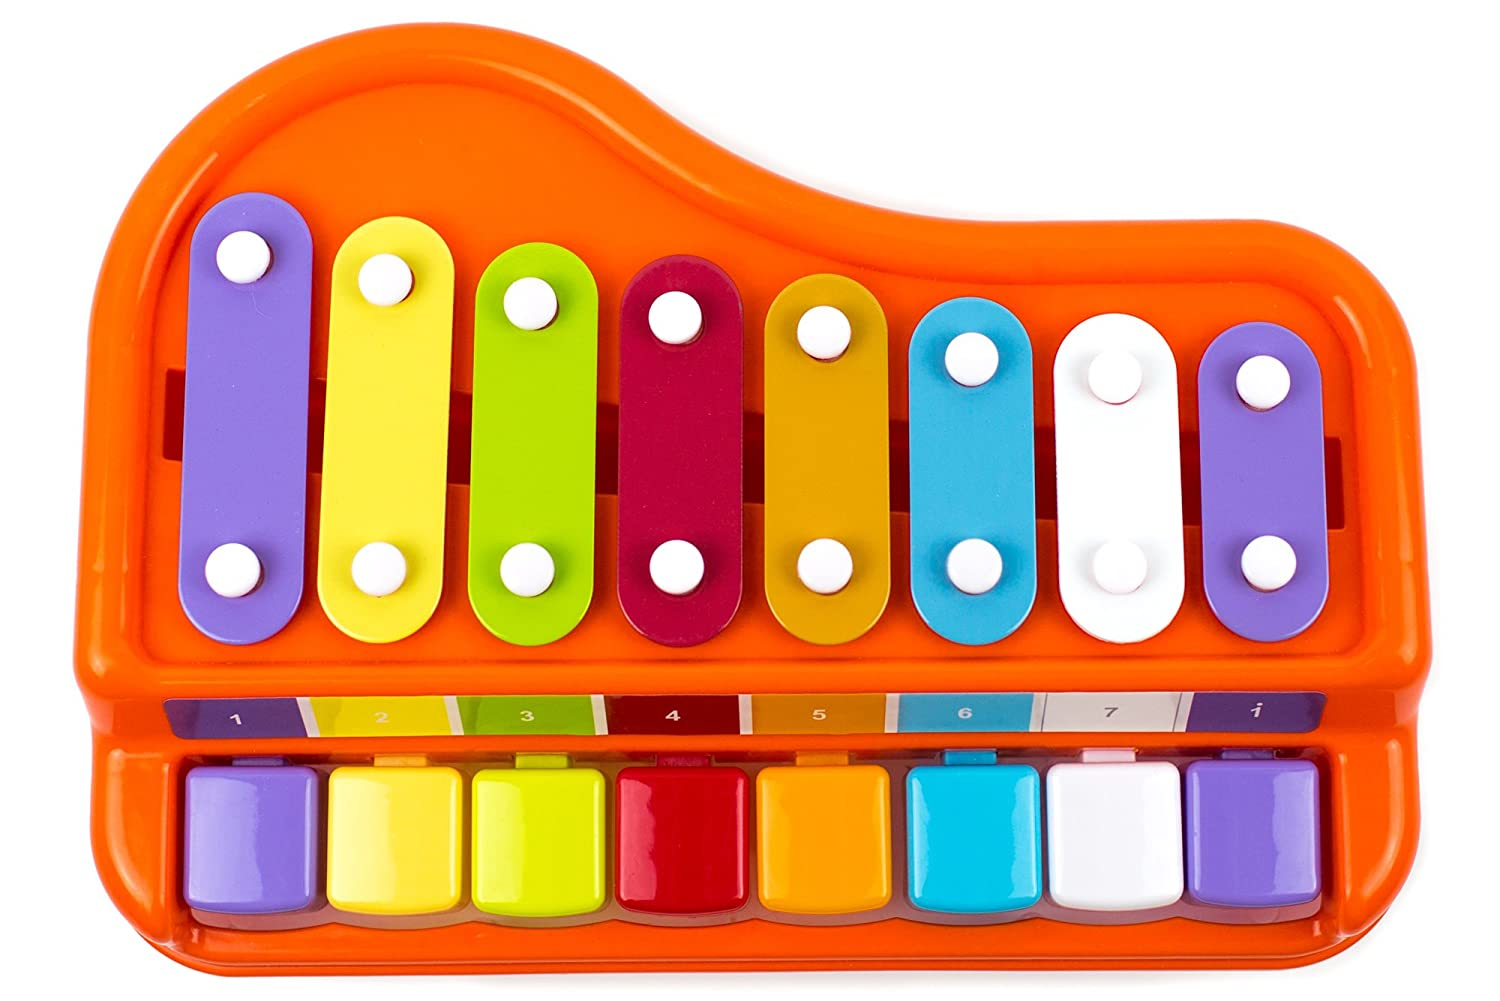 Toddlers Preschoolers Educational Musical Instruments Toyset for Babies Toysery 2 in 1 Piano Xylophone for Kids 8 Key Scales in Clear and Crisp Tones with Music Cards Songbook